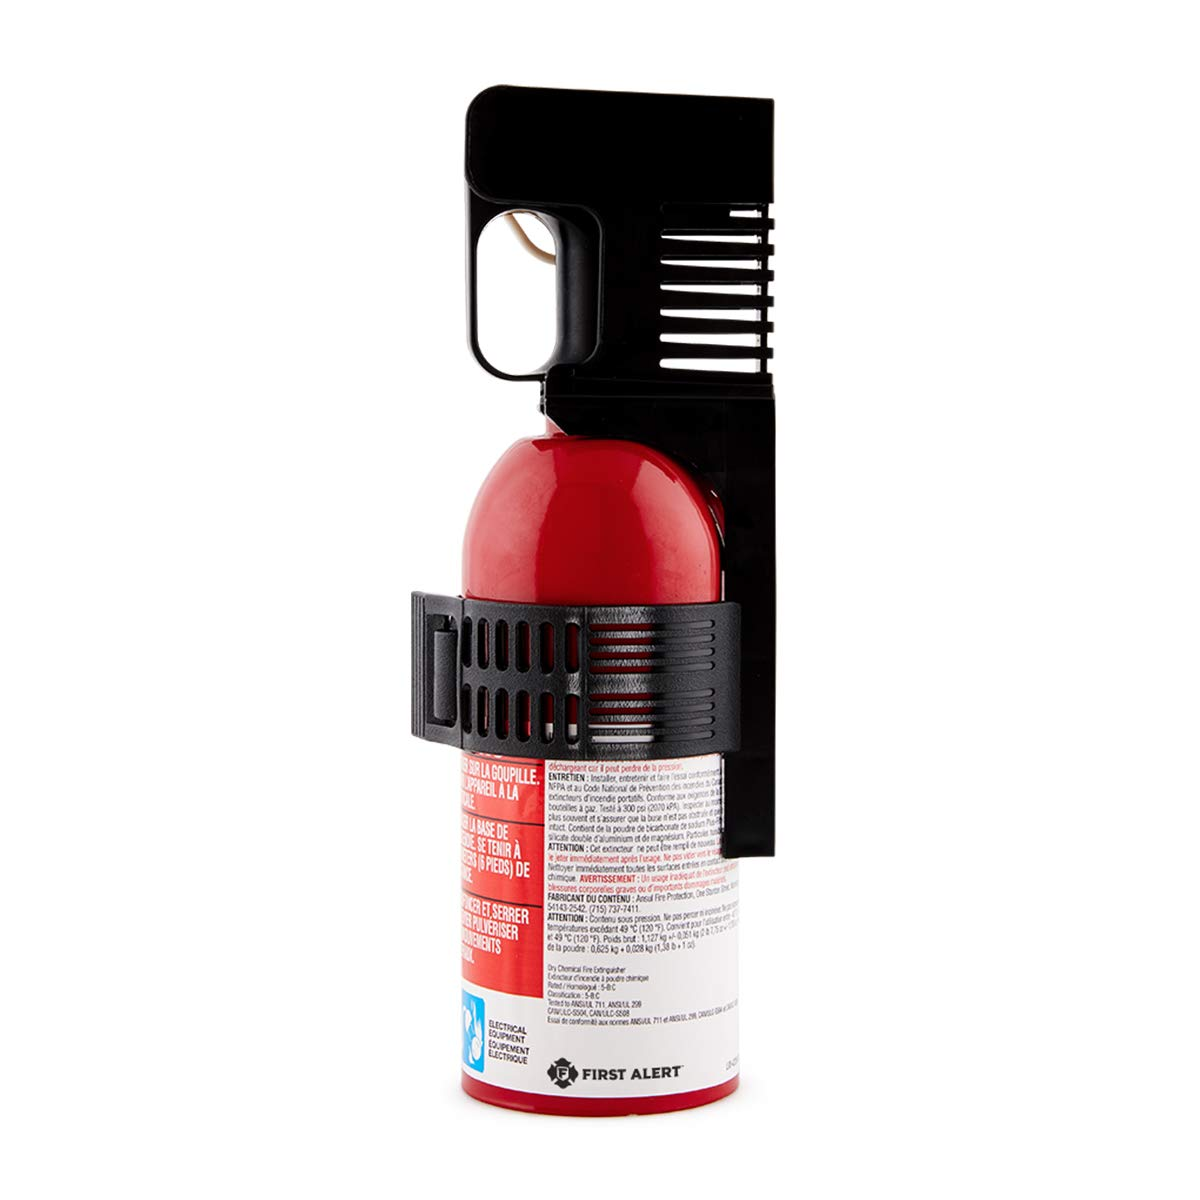 First Alert Fire Extinguisher | Car Fire Extinguisher, Red, AUTO5